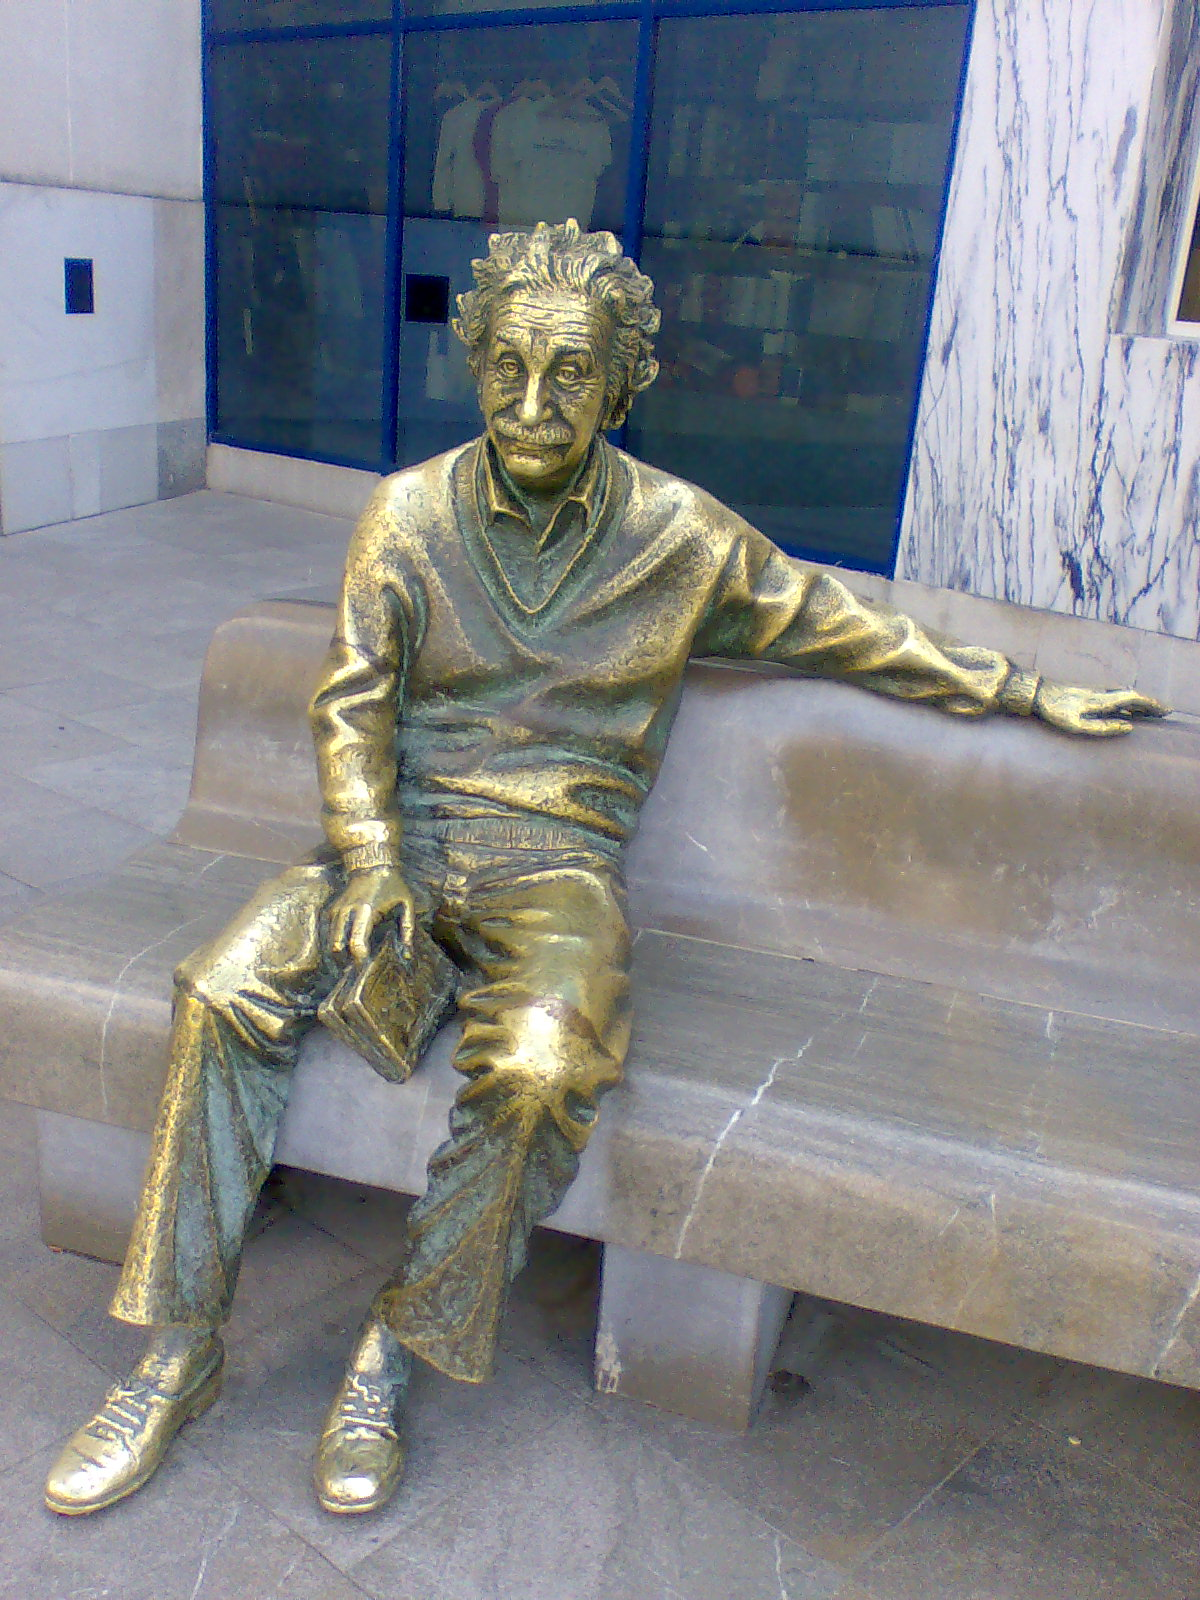 http://upload.wikimedia.org/wikipedia/commons/0/0d/Estatua_de_Einstein._Parque_de_Ciencias_Granada.jpg